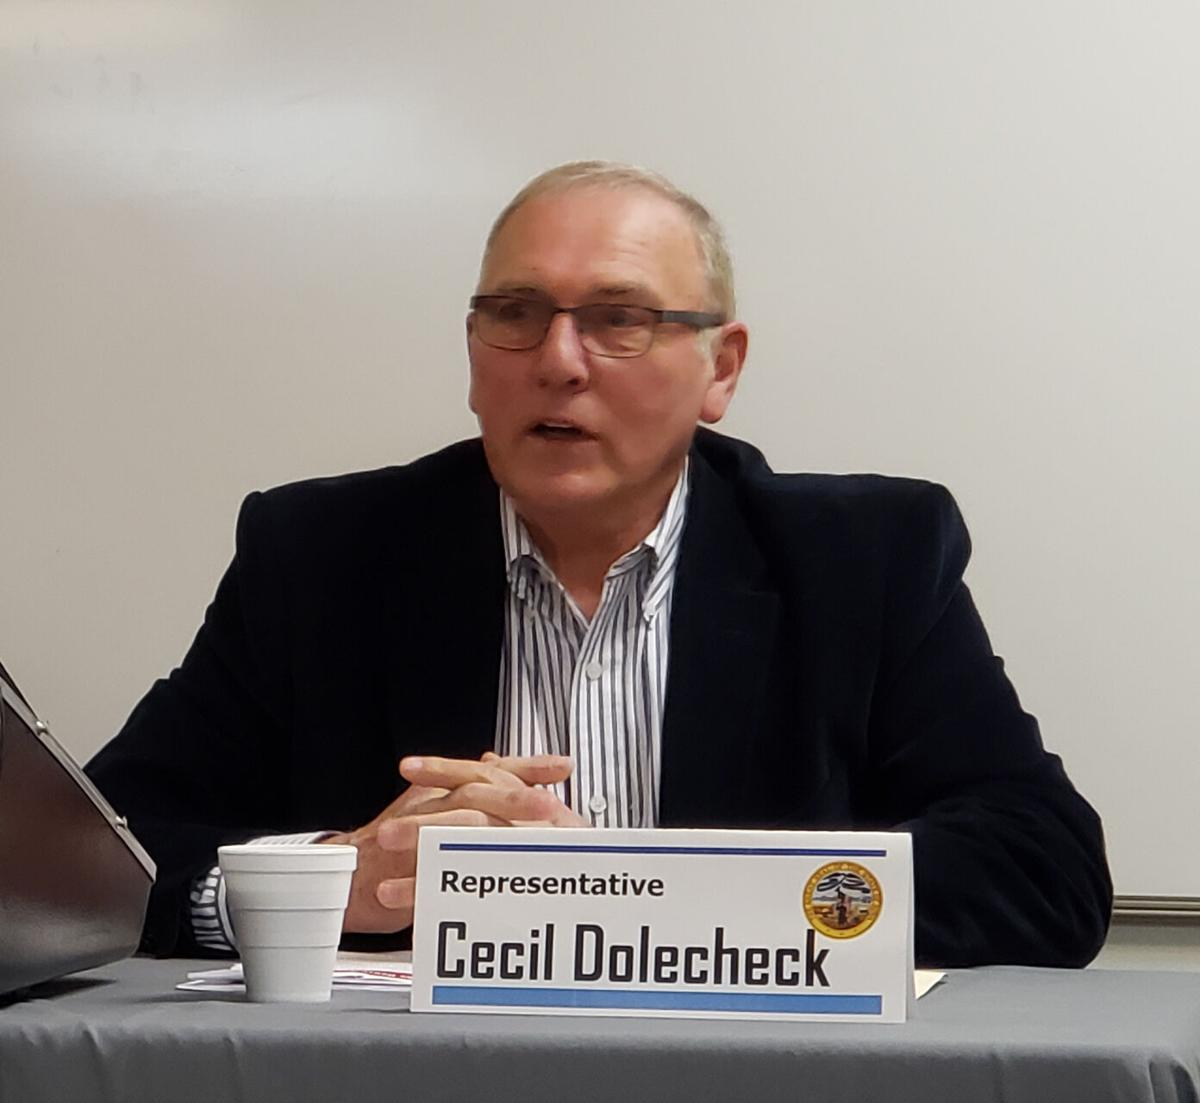 Dolecheck plans to continue focus on education if reelected